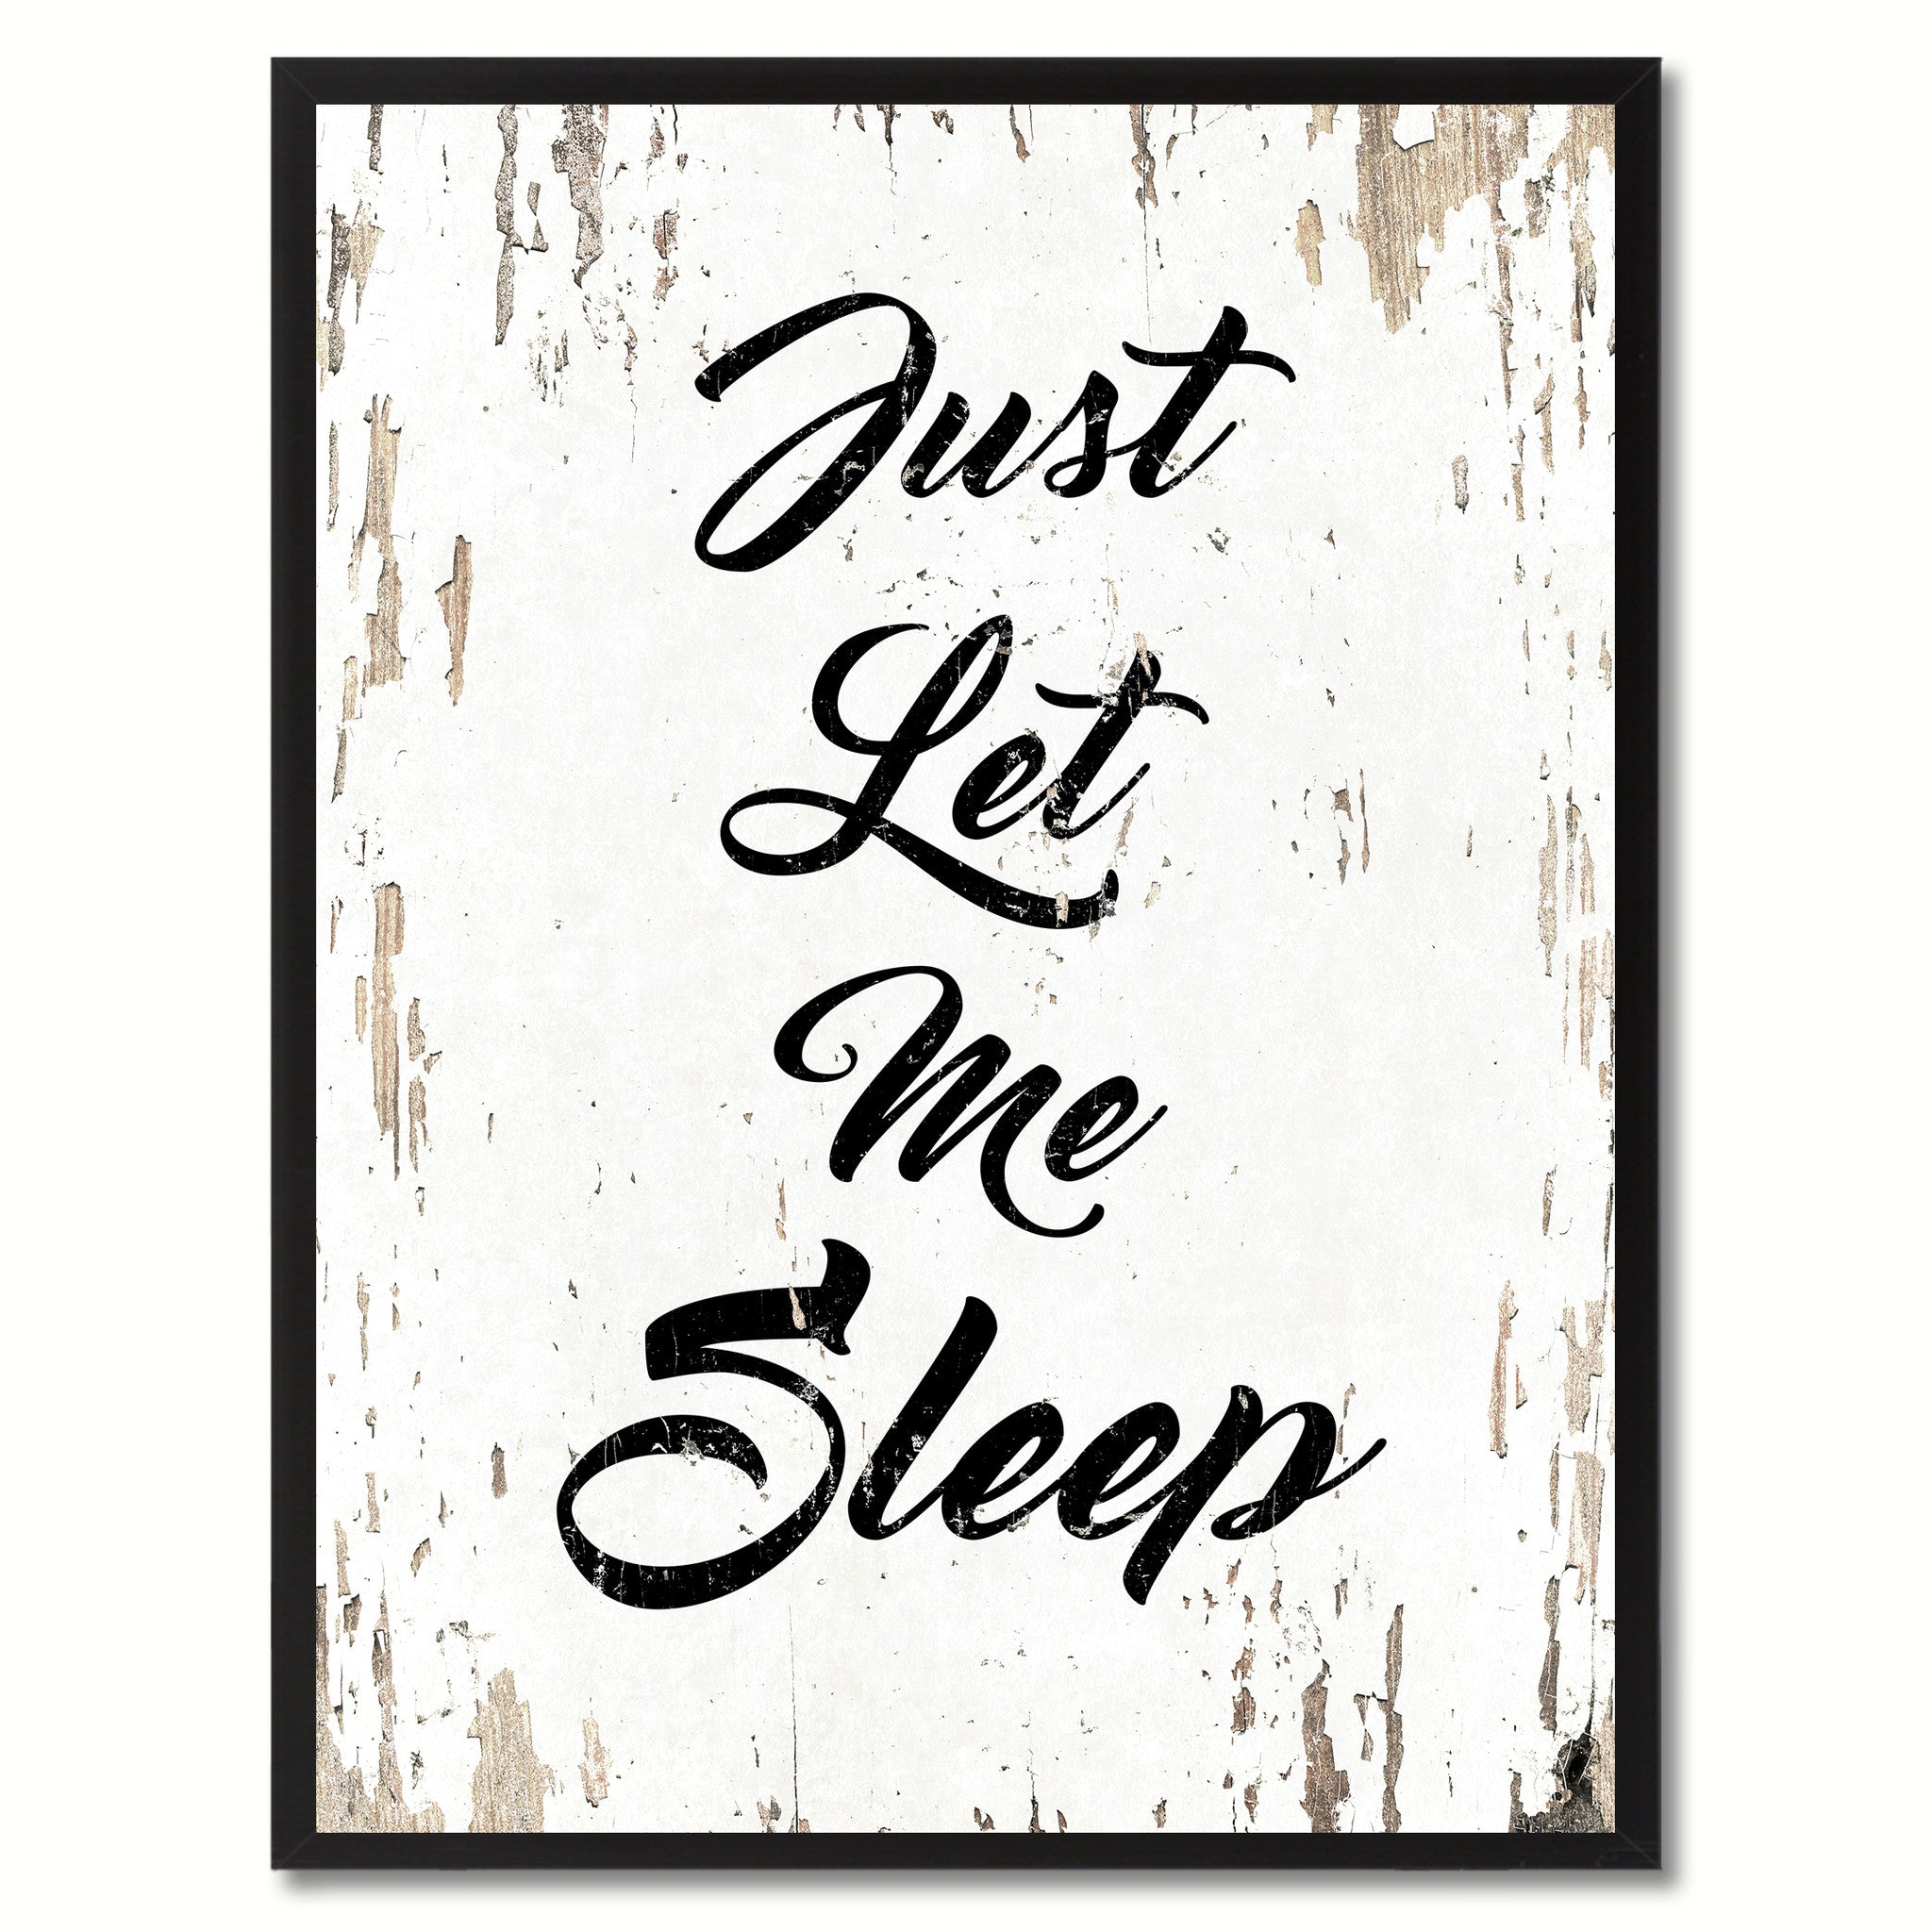 Just Let Me Sleep Saying Canvas Print, Black Picture Frame Home Decor Wall Art Gifts